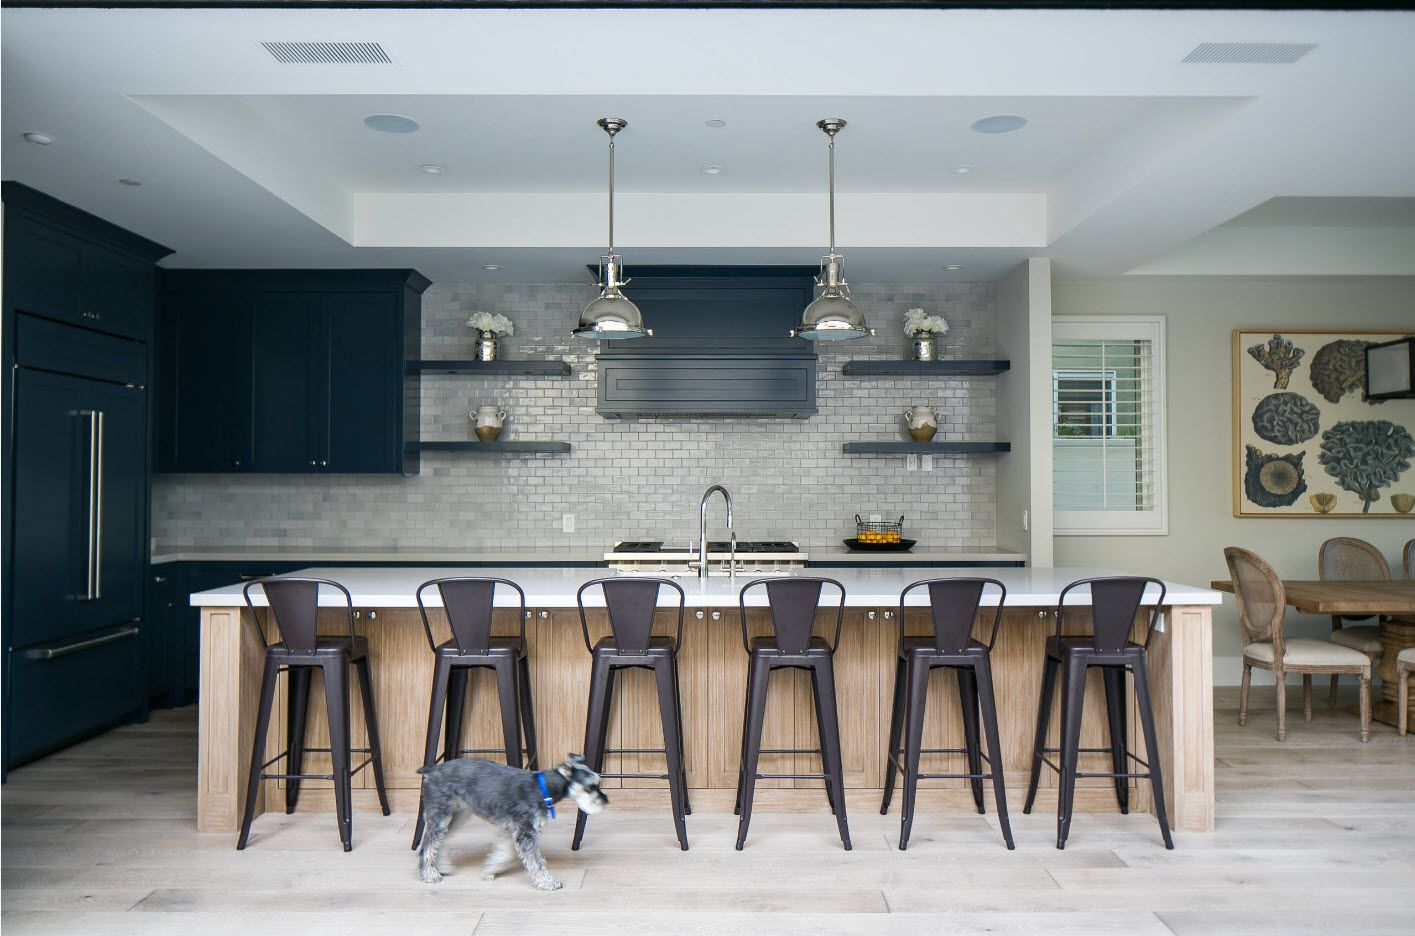 A set of bar stools at the dining zone of modern kitchen with dining zone